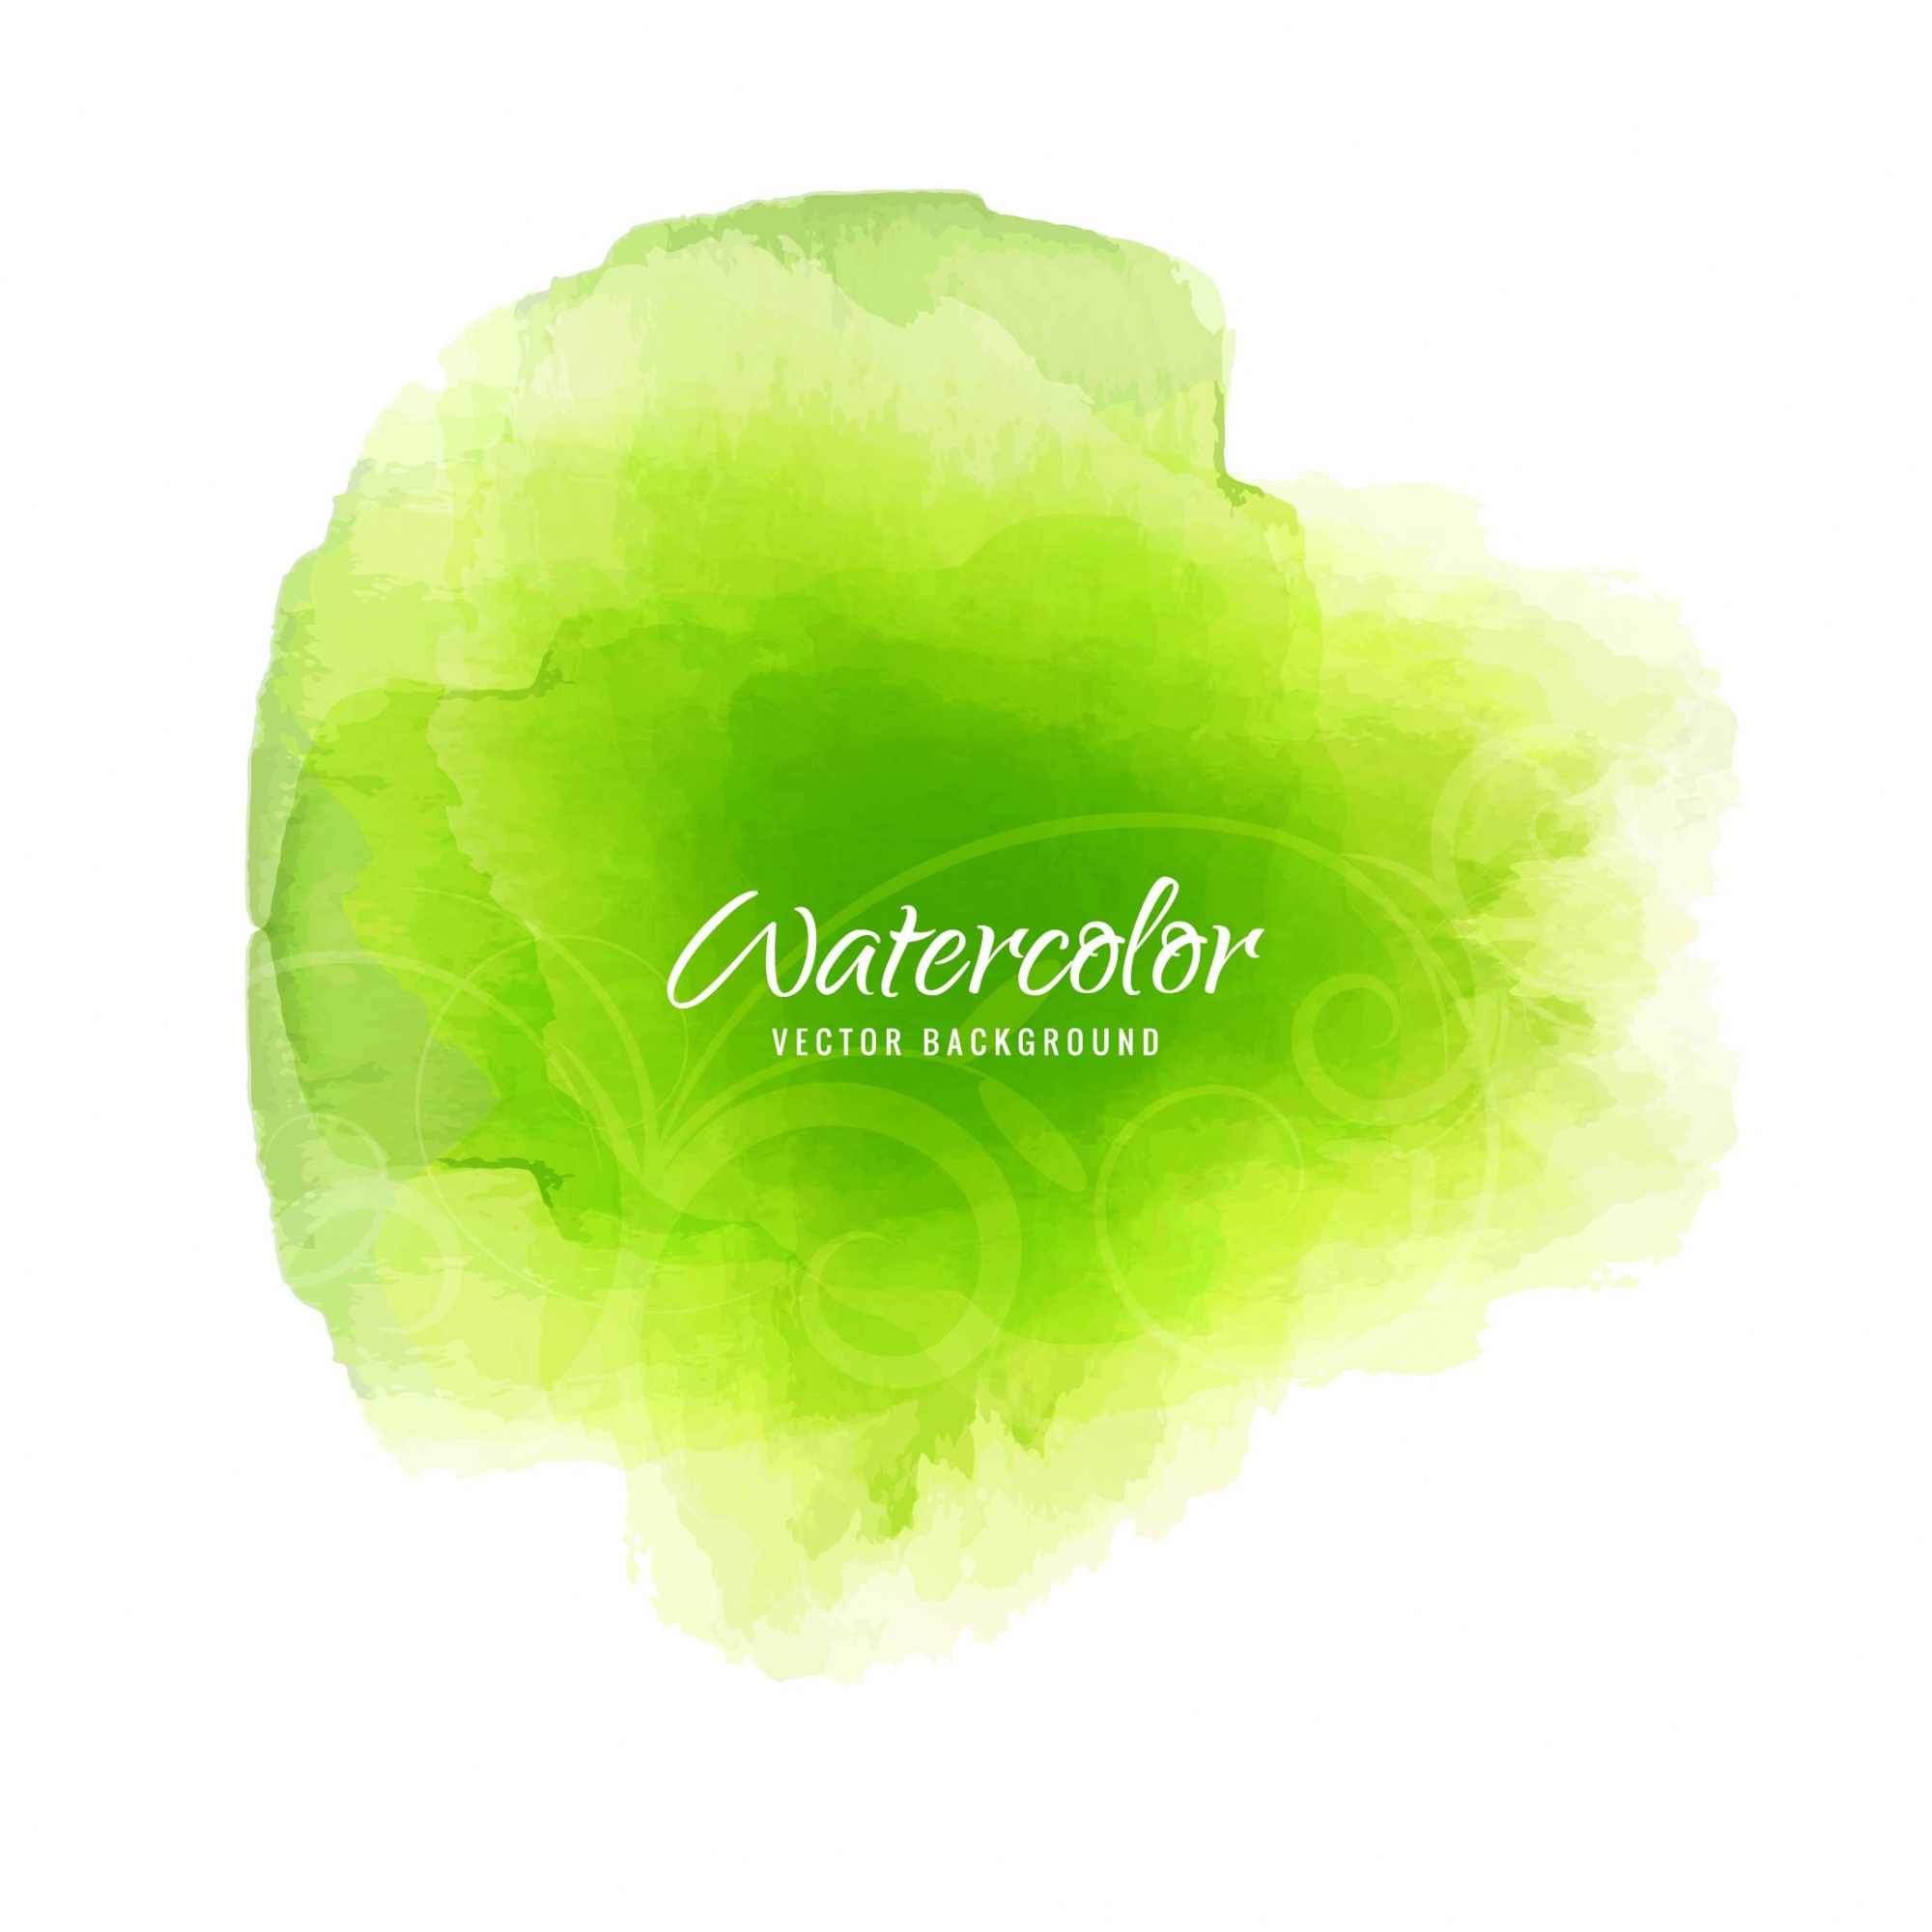 Shiny green watercolor background